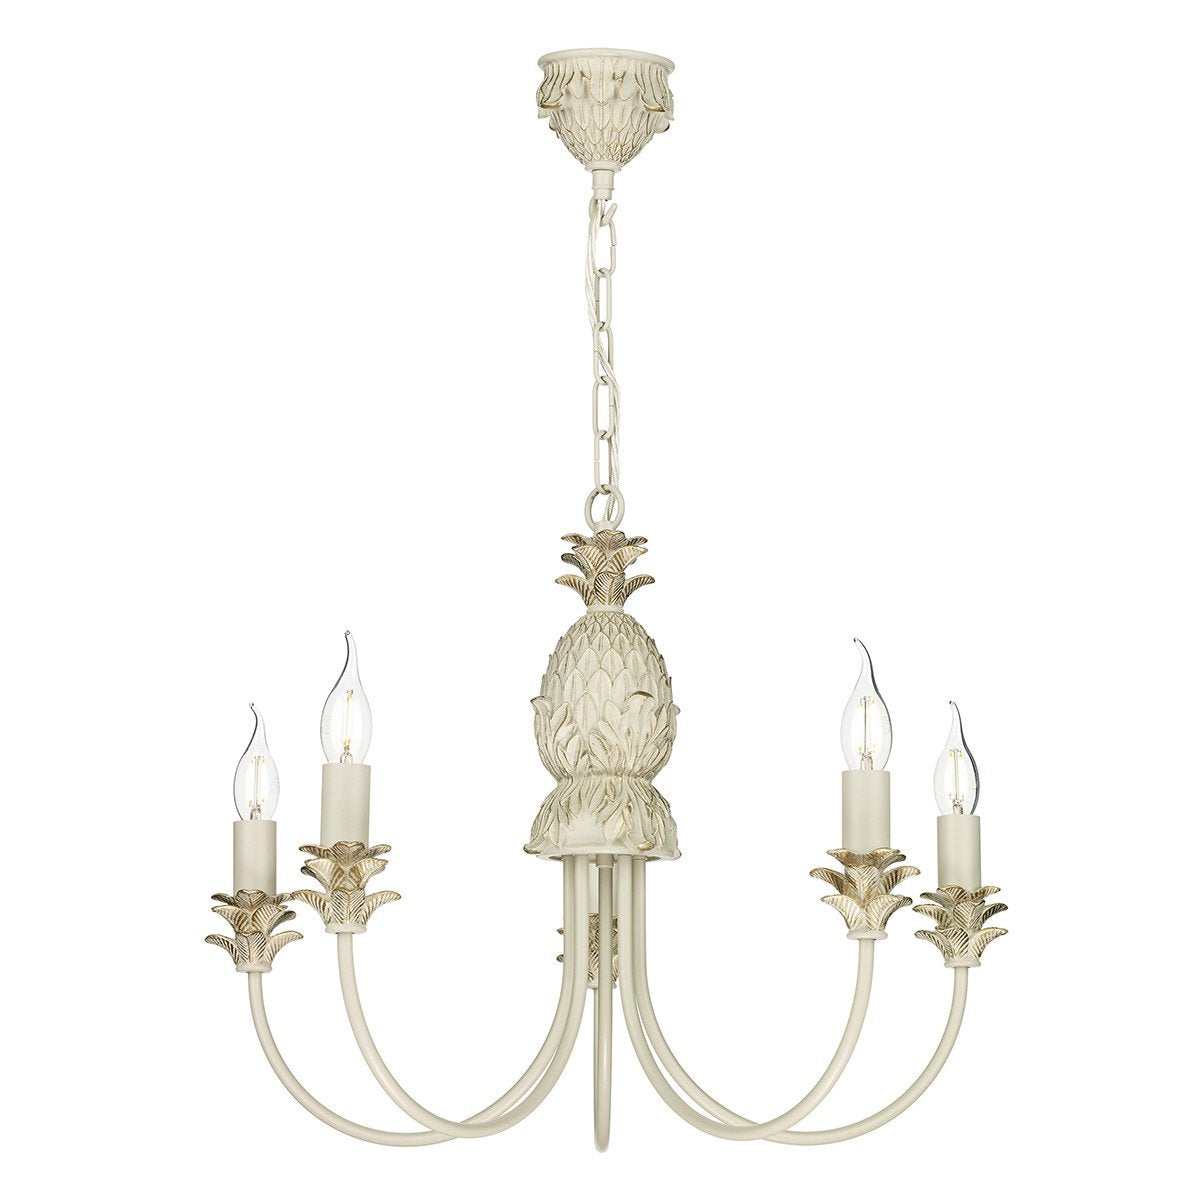 Cabana 5 Lamp Ceiling Light